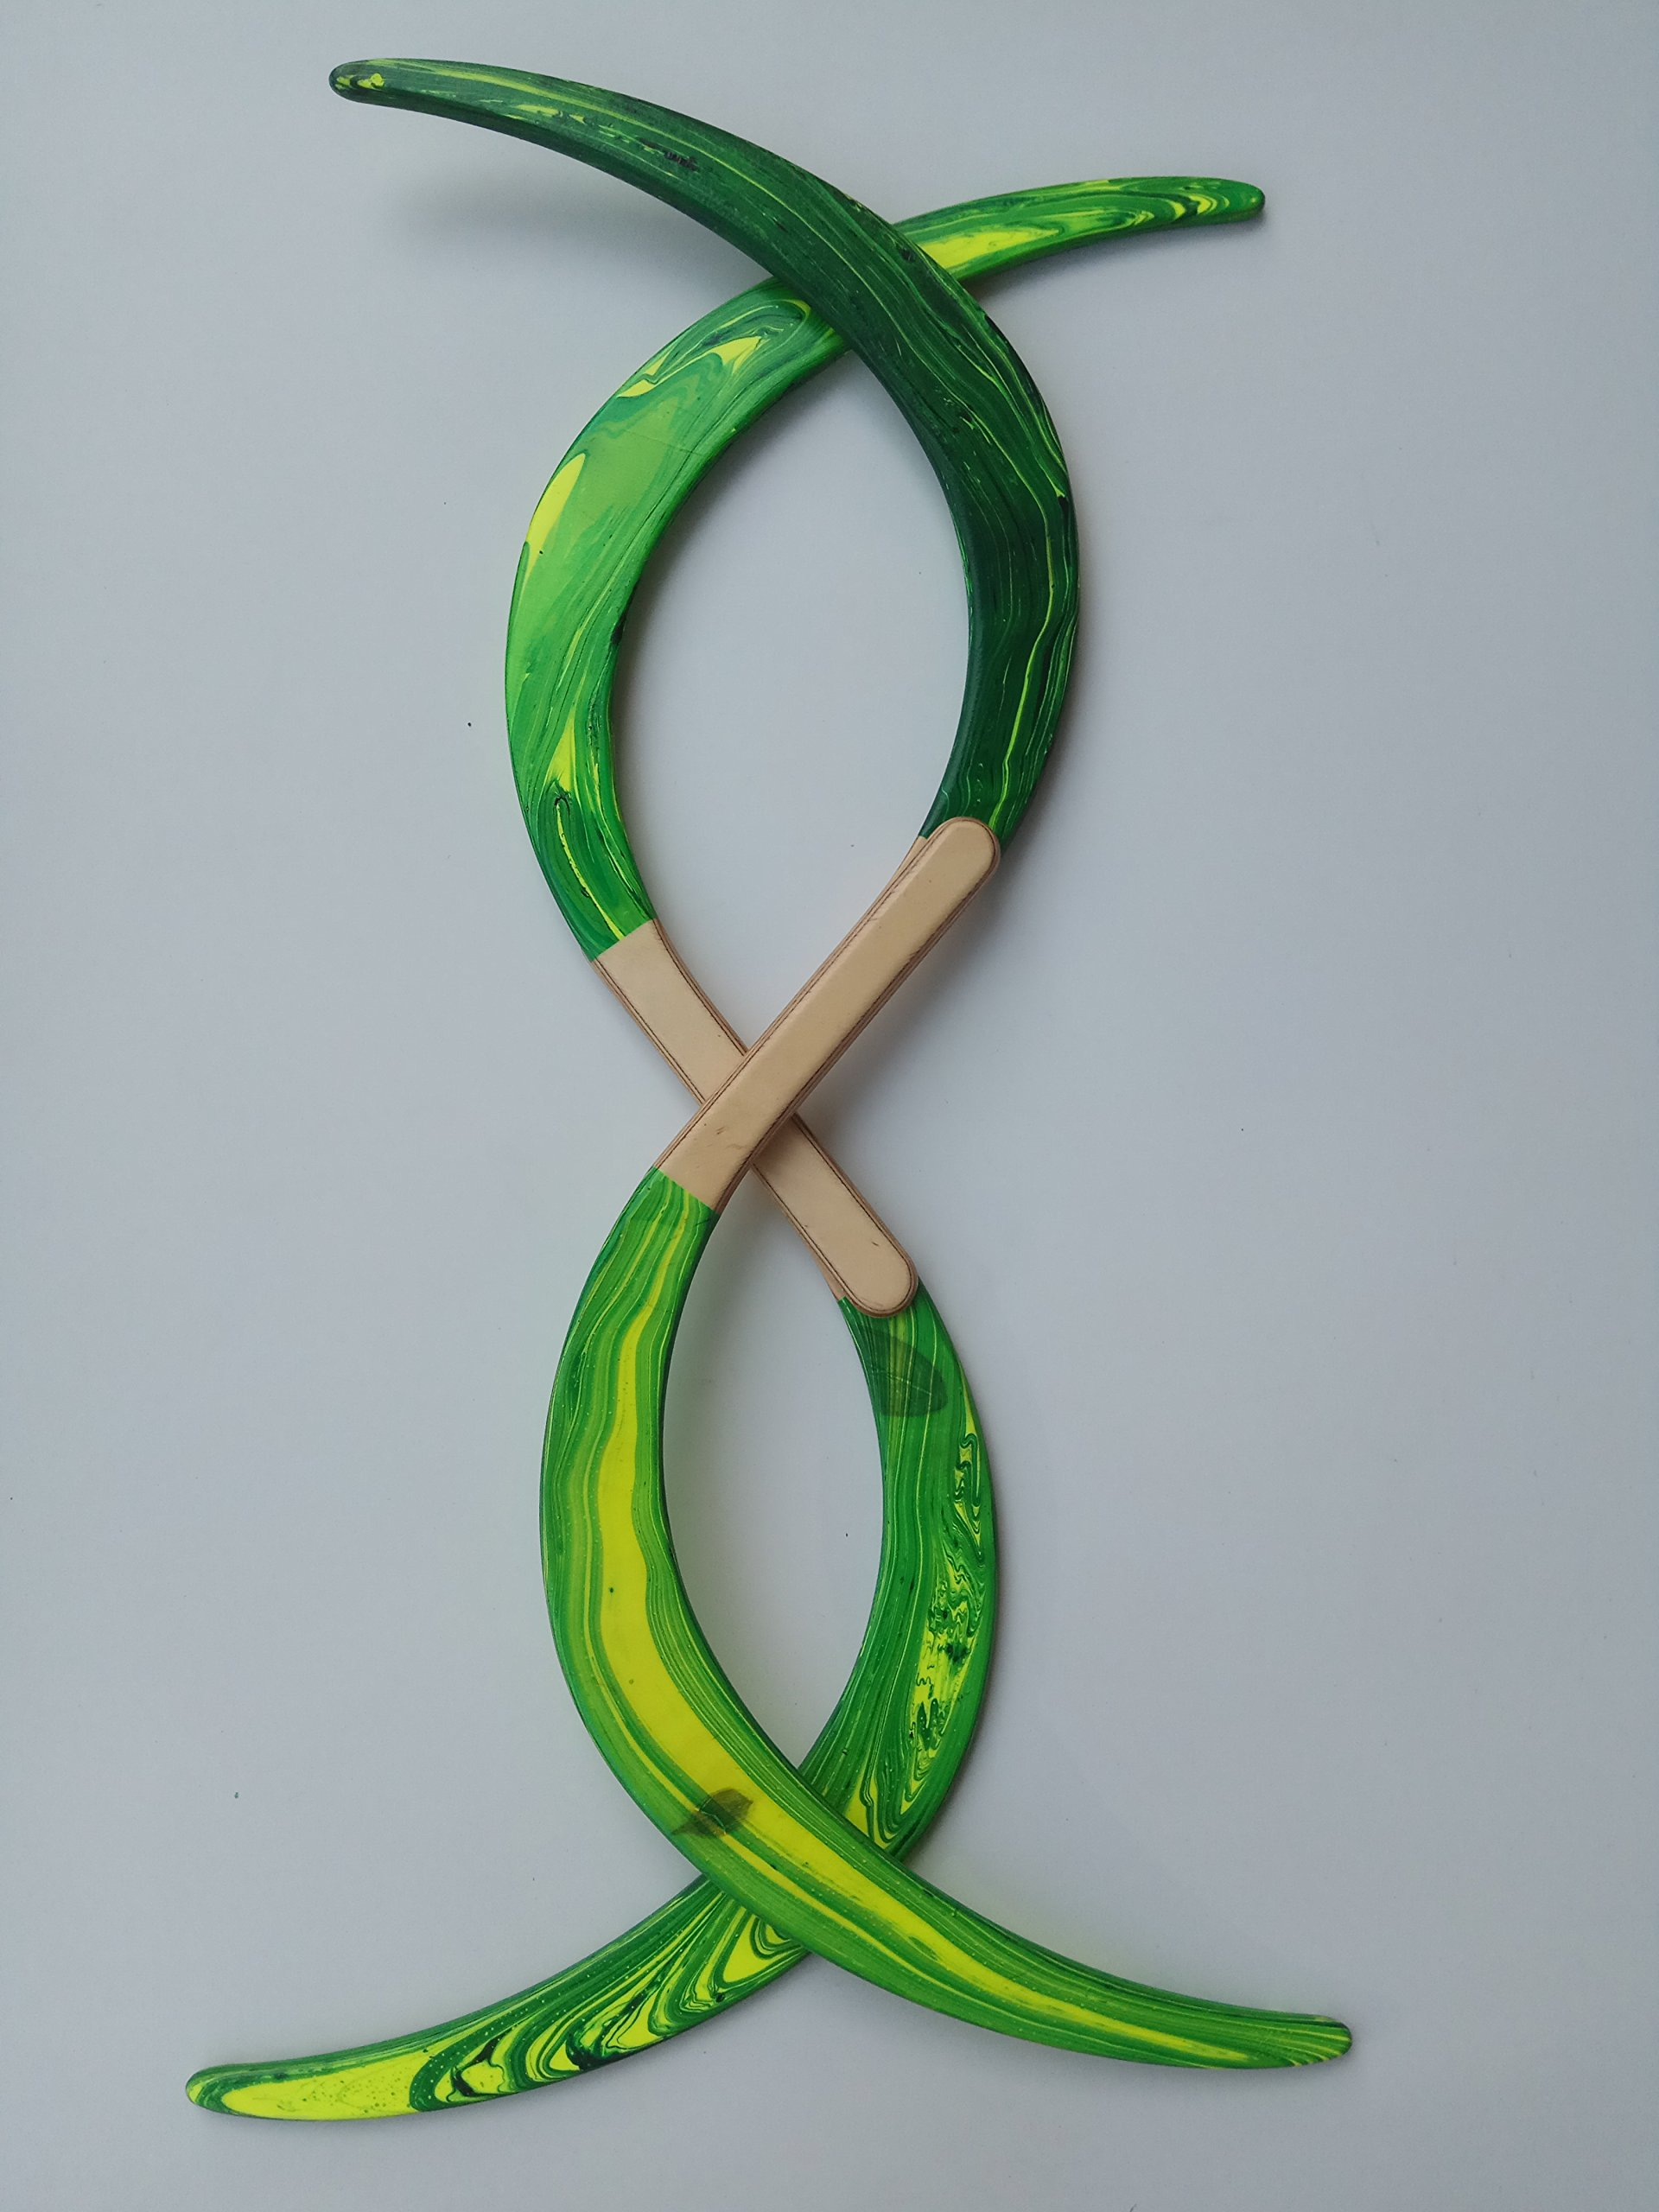 Swirl Buugeng Juggling S Staff S Staves Bugeng Hand Made 2 Pieces Yellow and Green Glows in UV Carry Bag by Buugeng Flow Master J.A.H (Image #7)